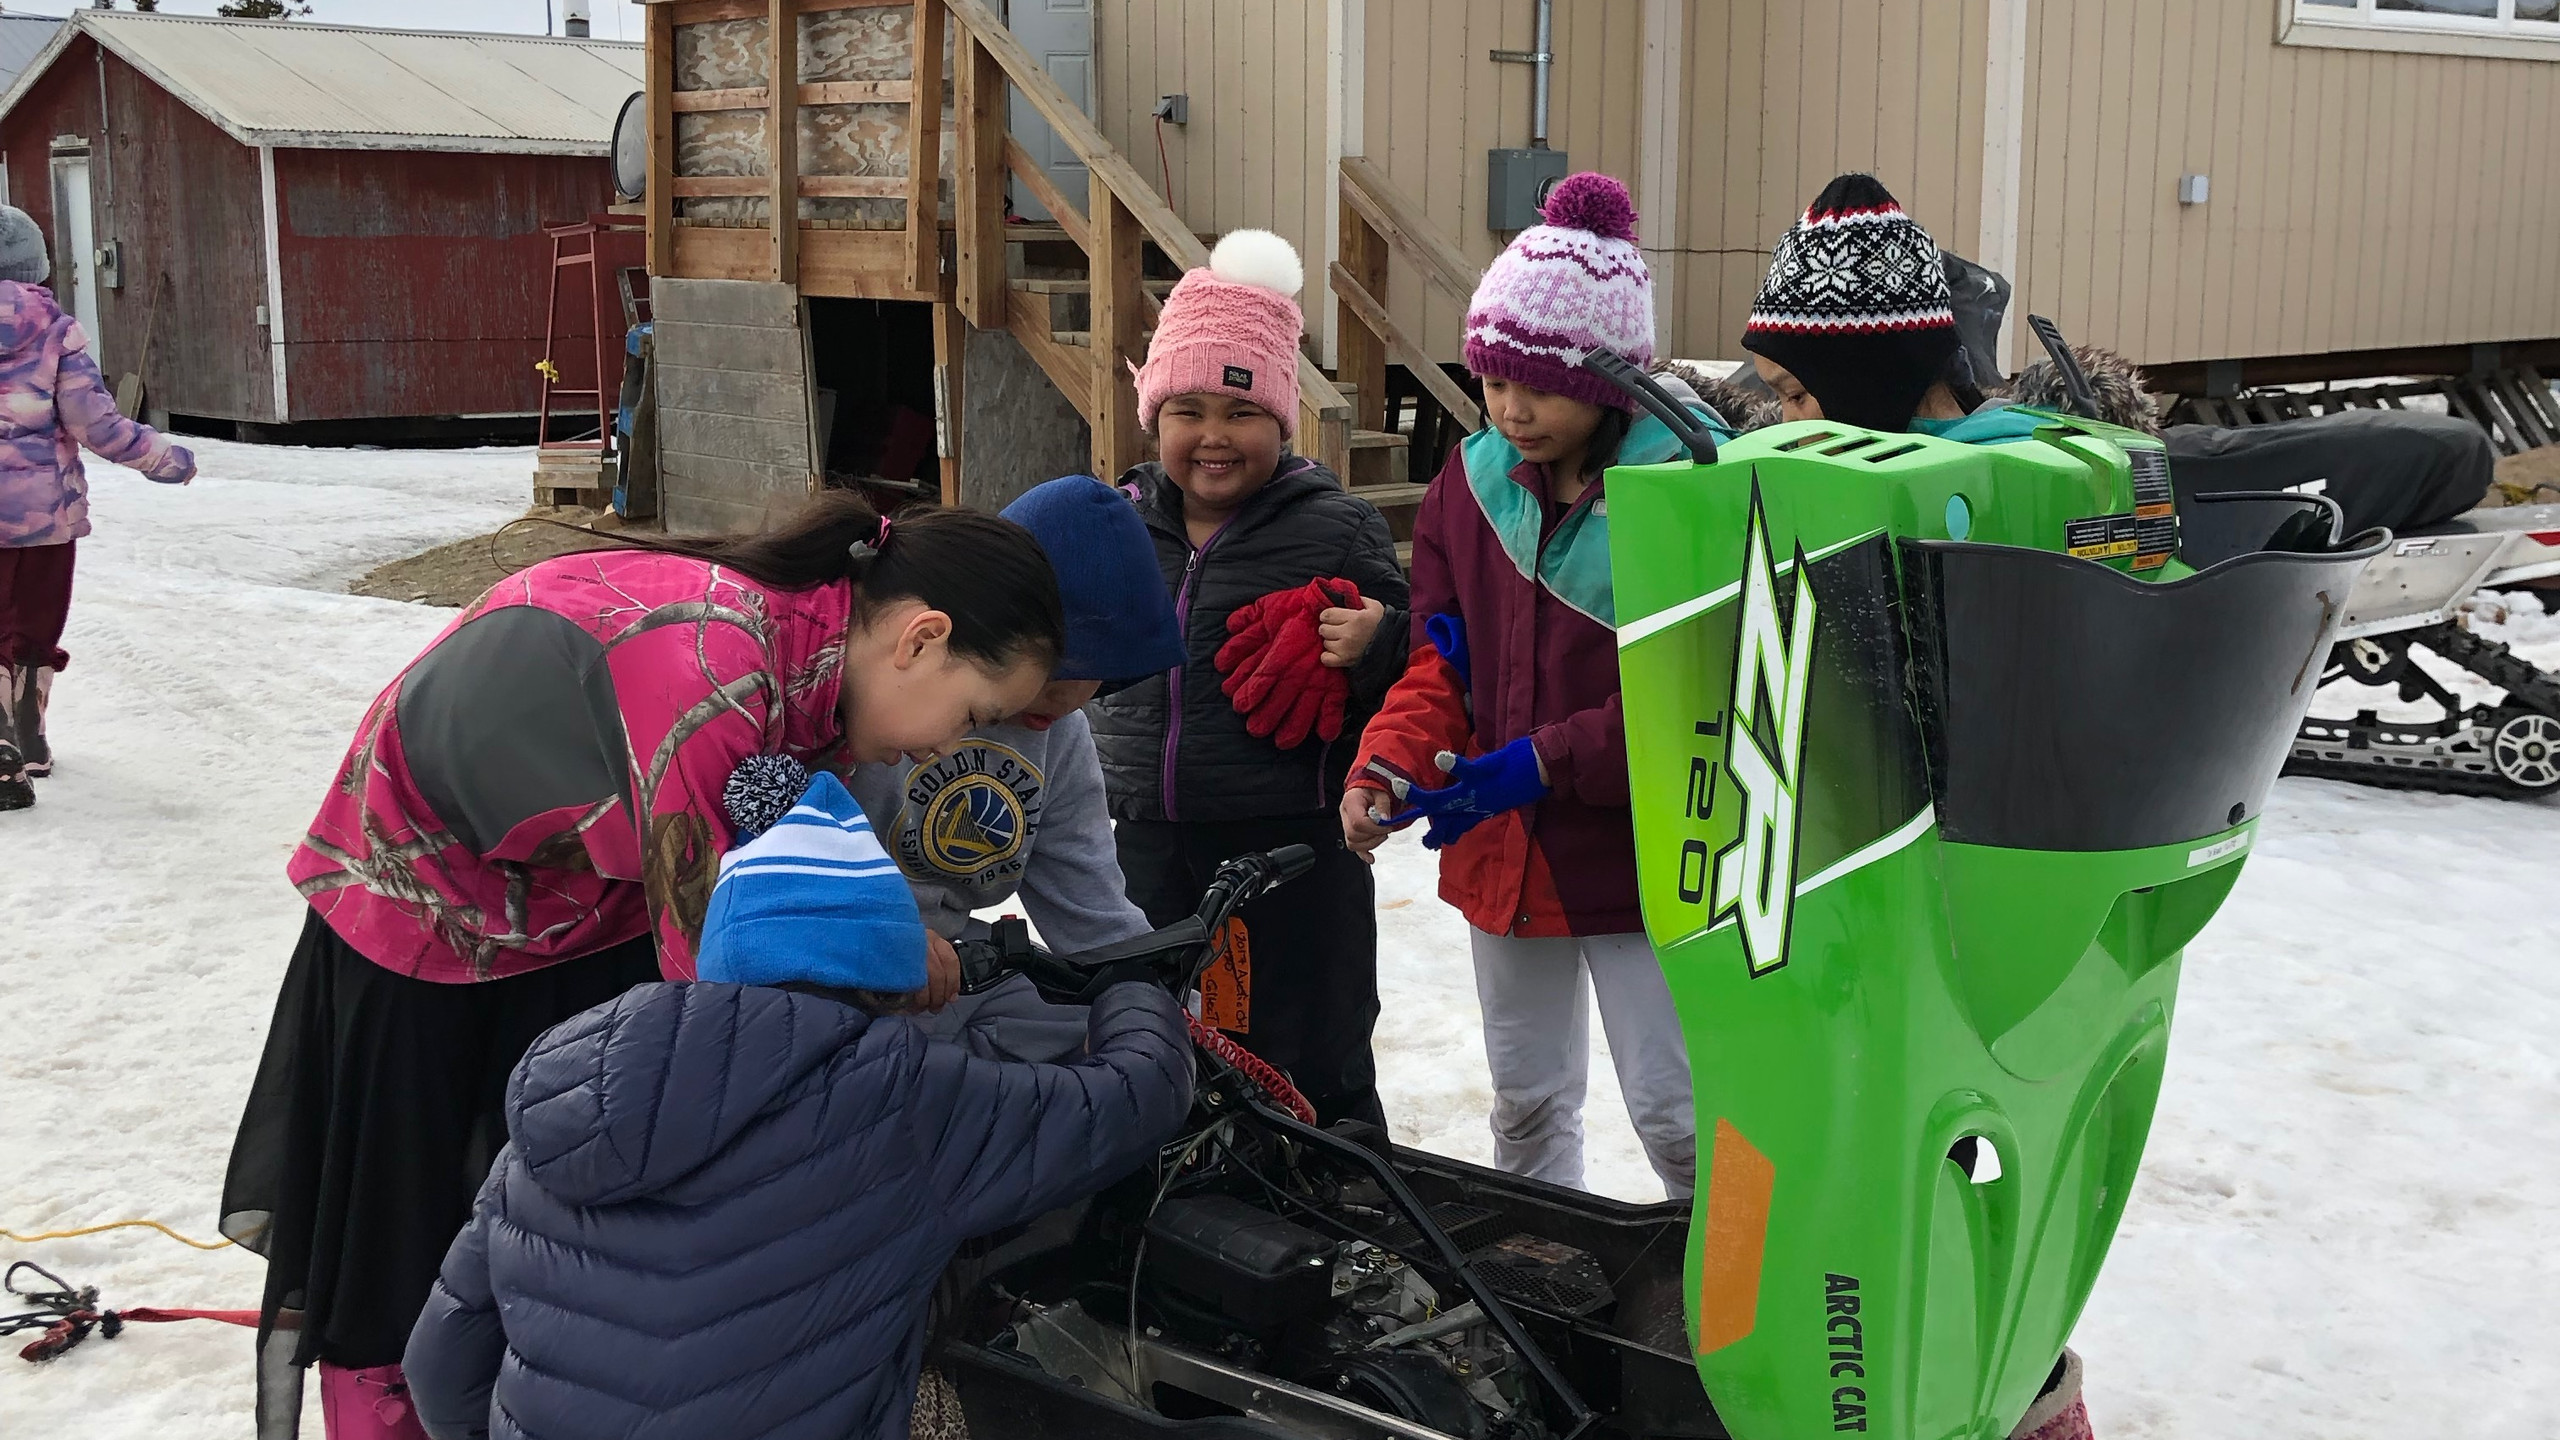 The kids working on their snowmobile